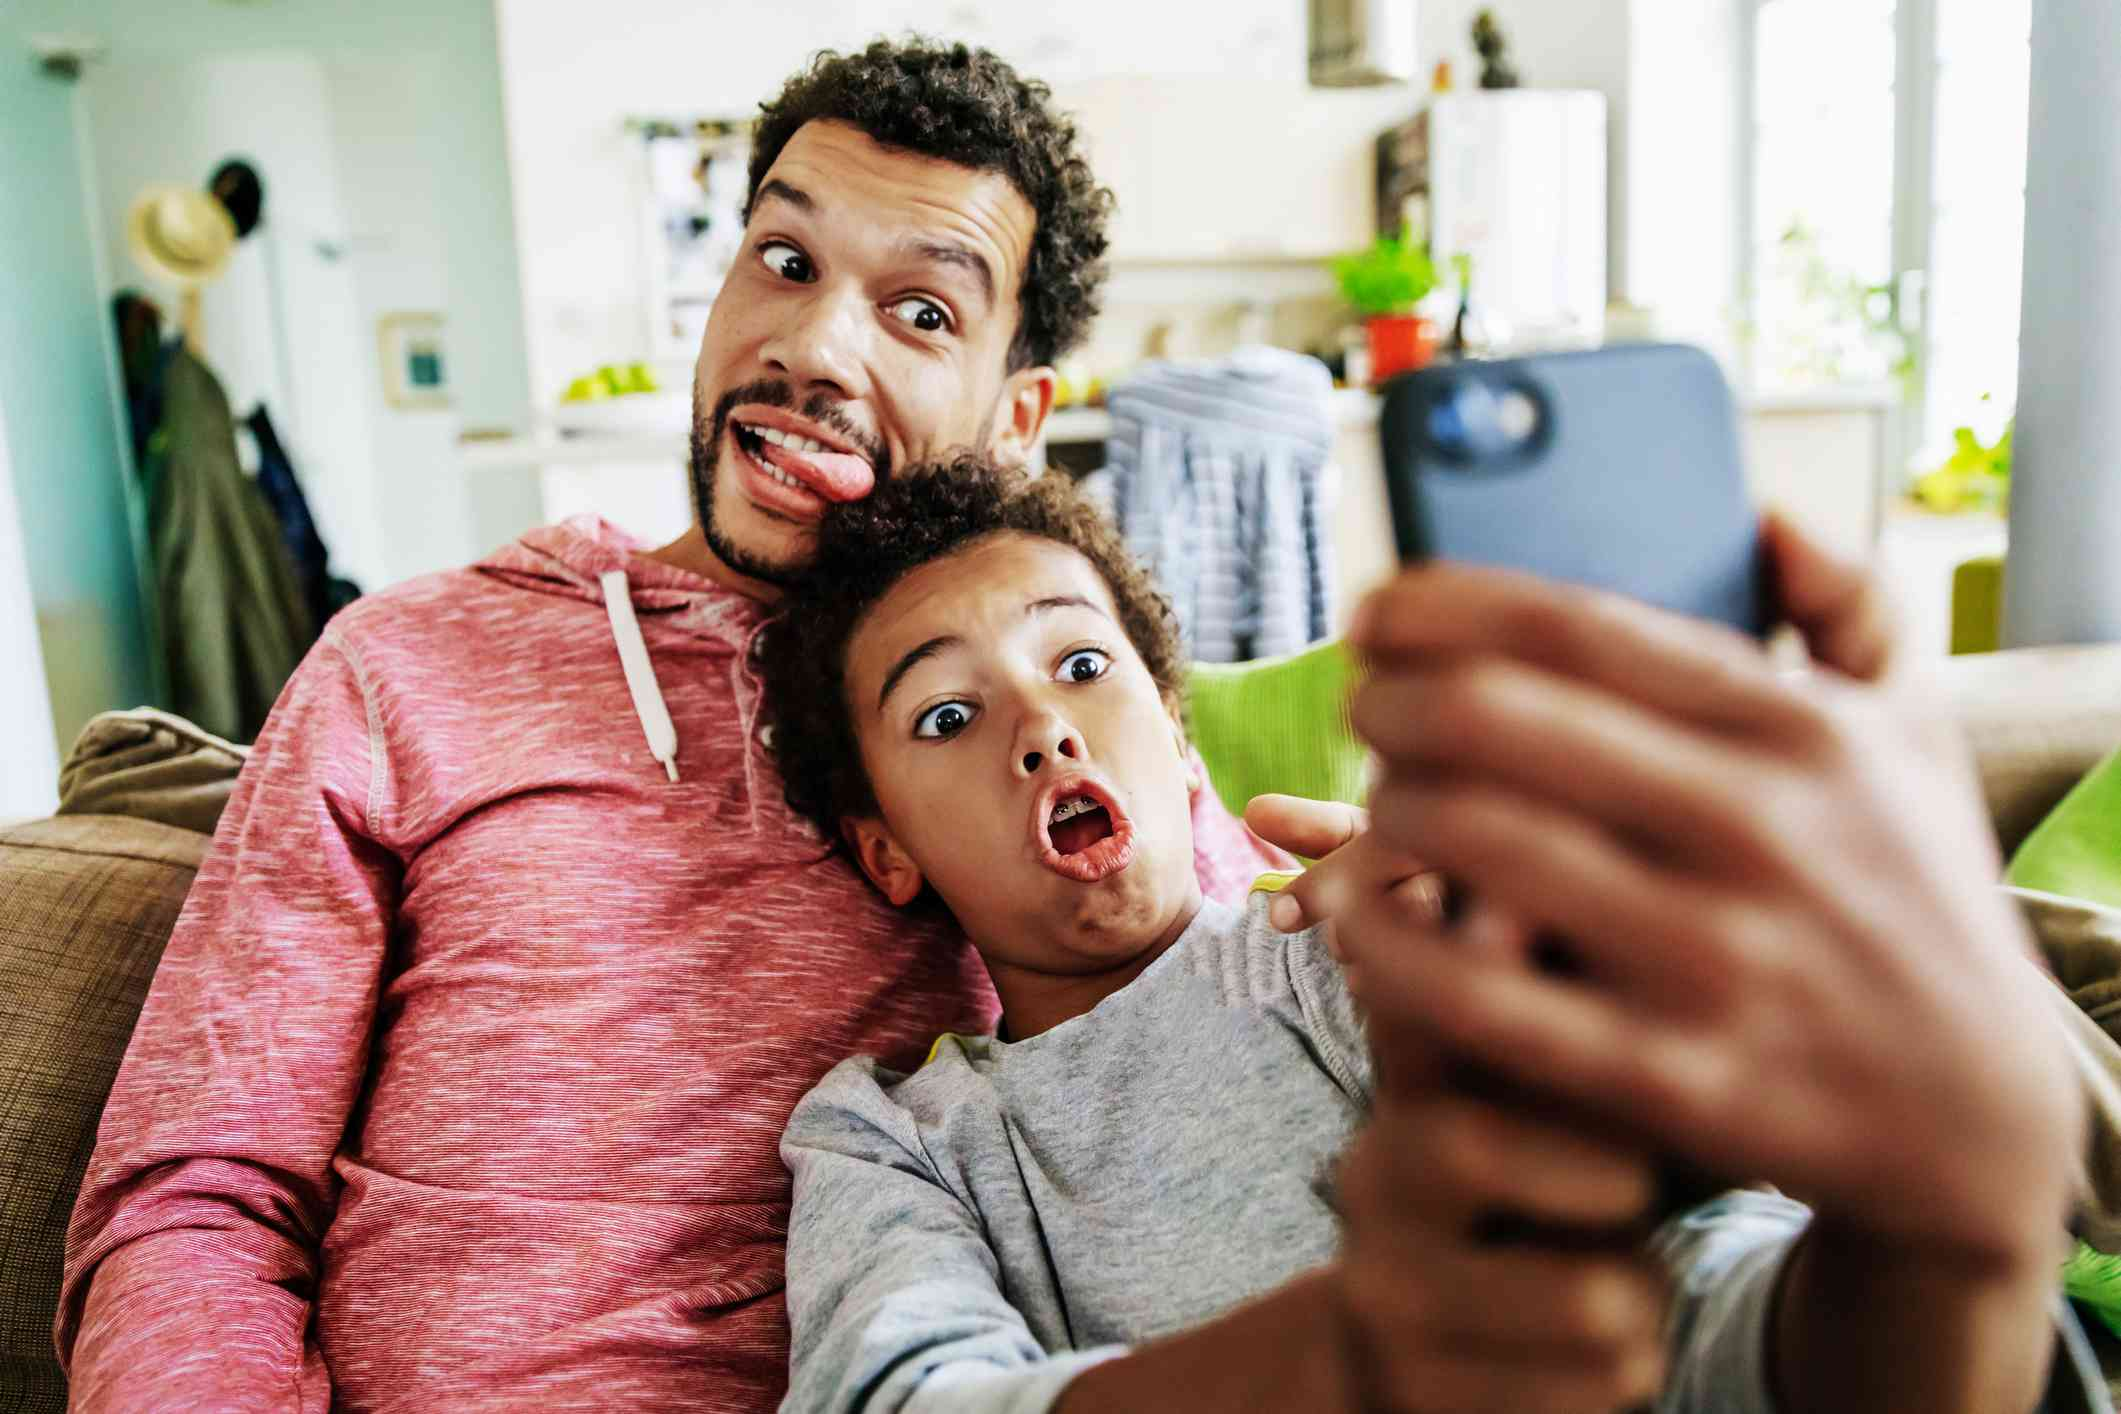 A father and son making funny faces while taking a selfie